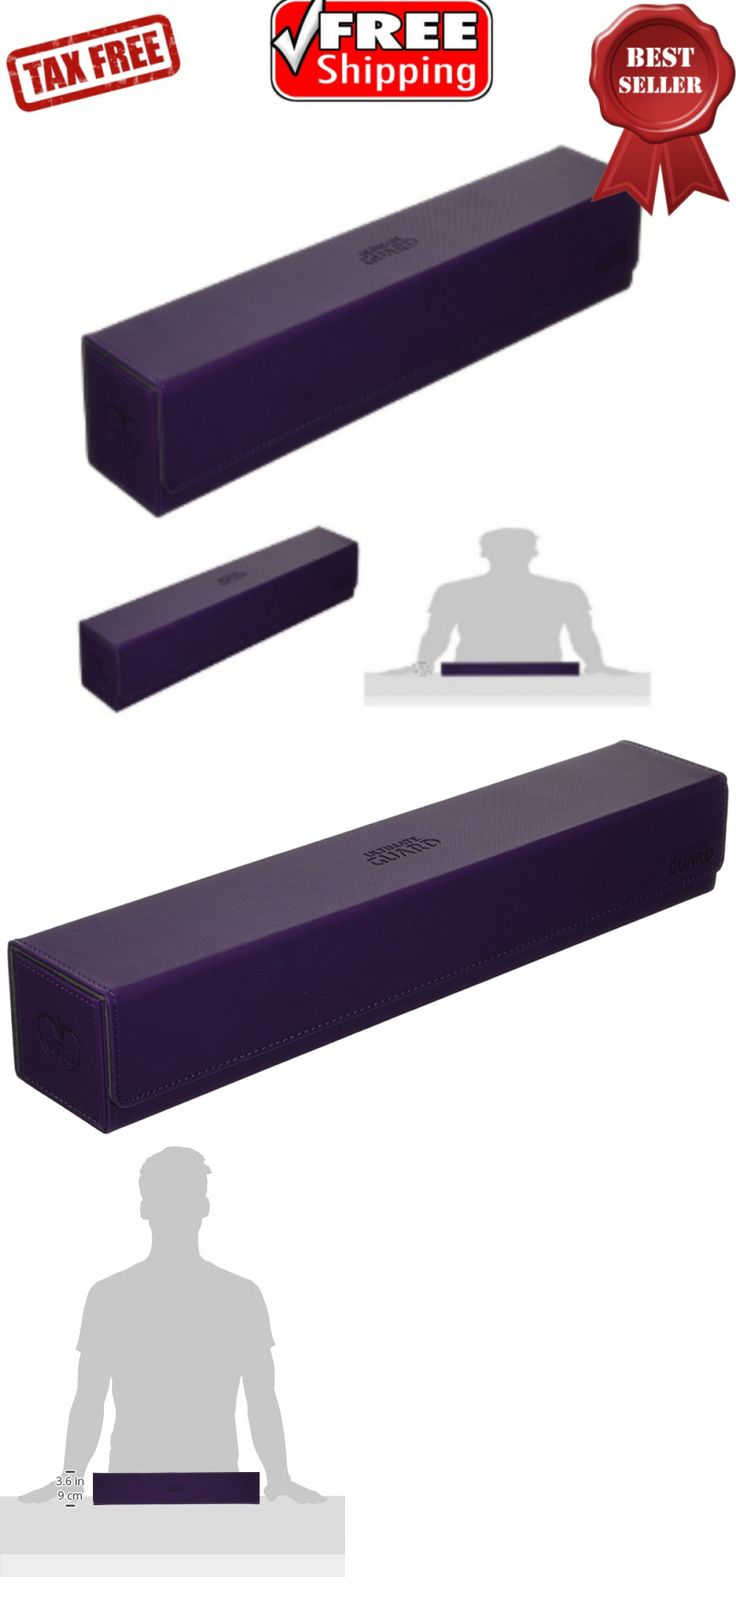 CCG Deck Boxes 183462: Flip N Tray Mat Case Card Game Anti Slip Super Rigid Double Layer Purple 61X35cm -> BUY IT NOW ONLY: $53.17 on eBay!